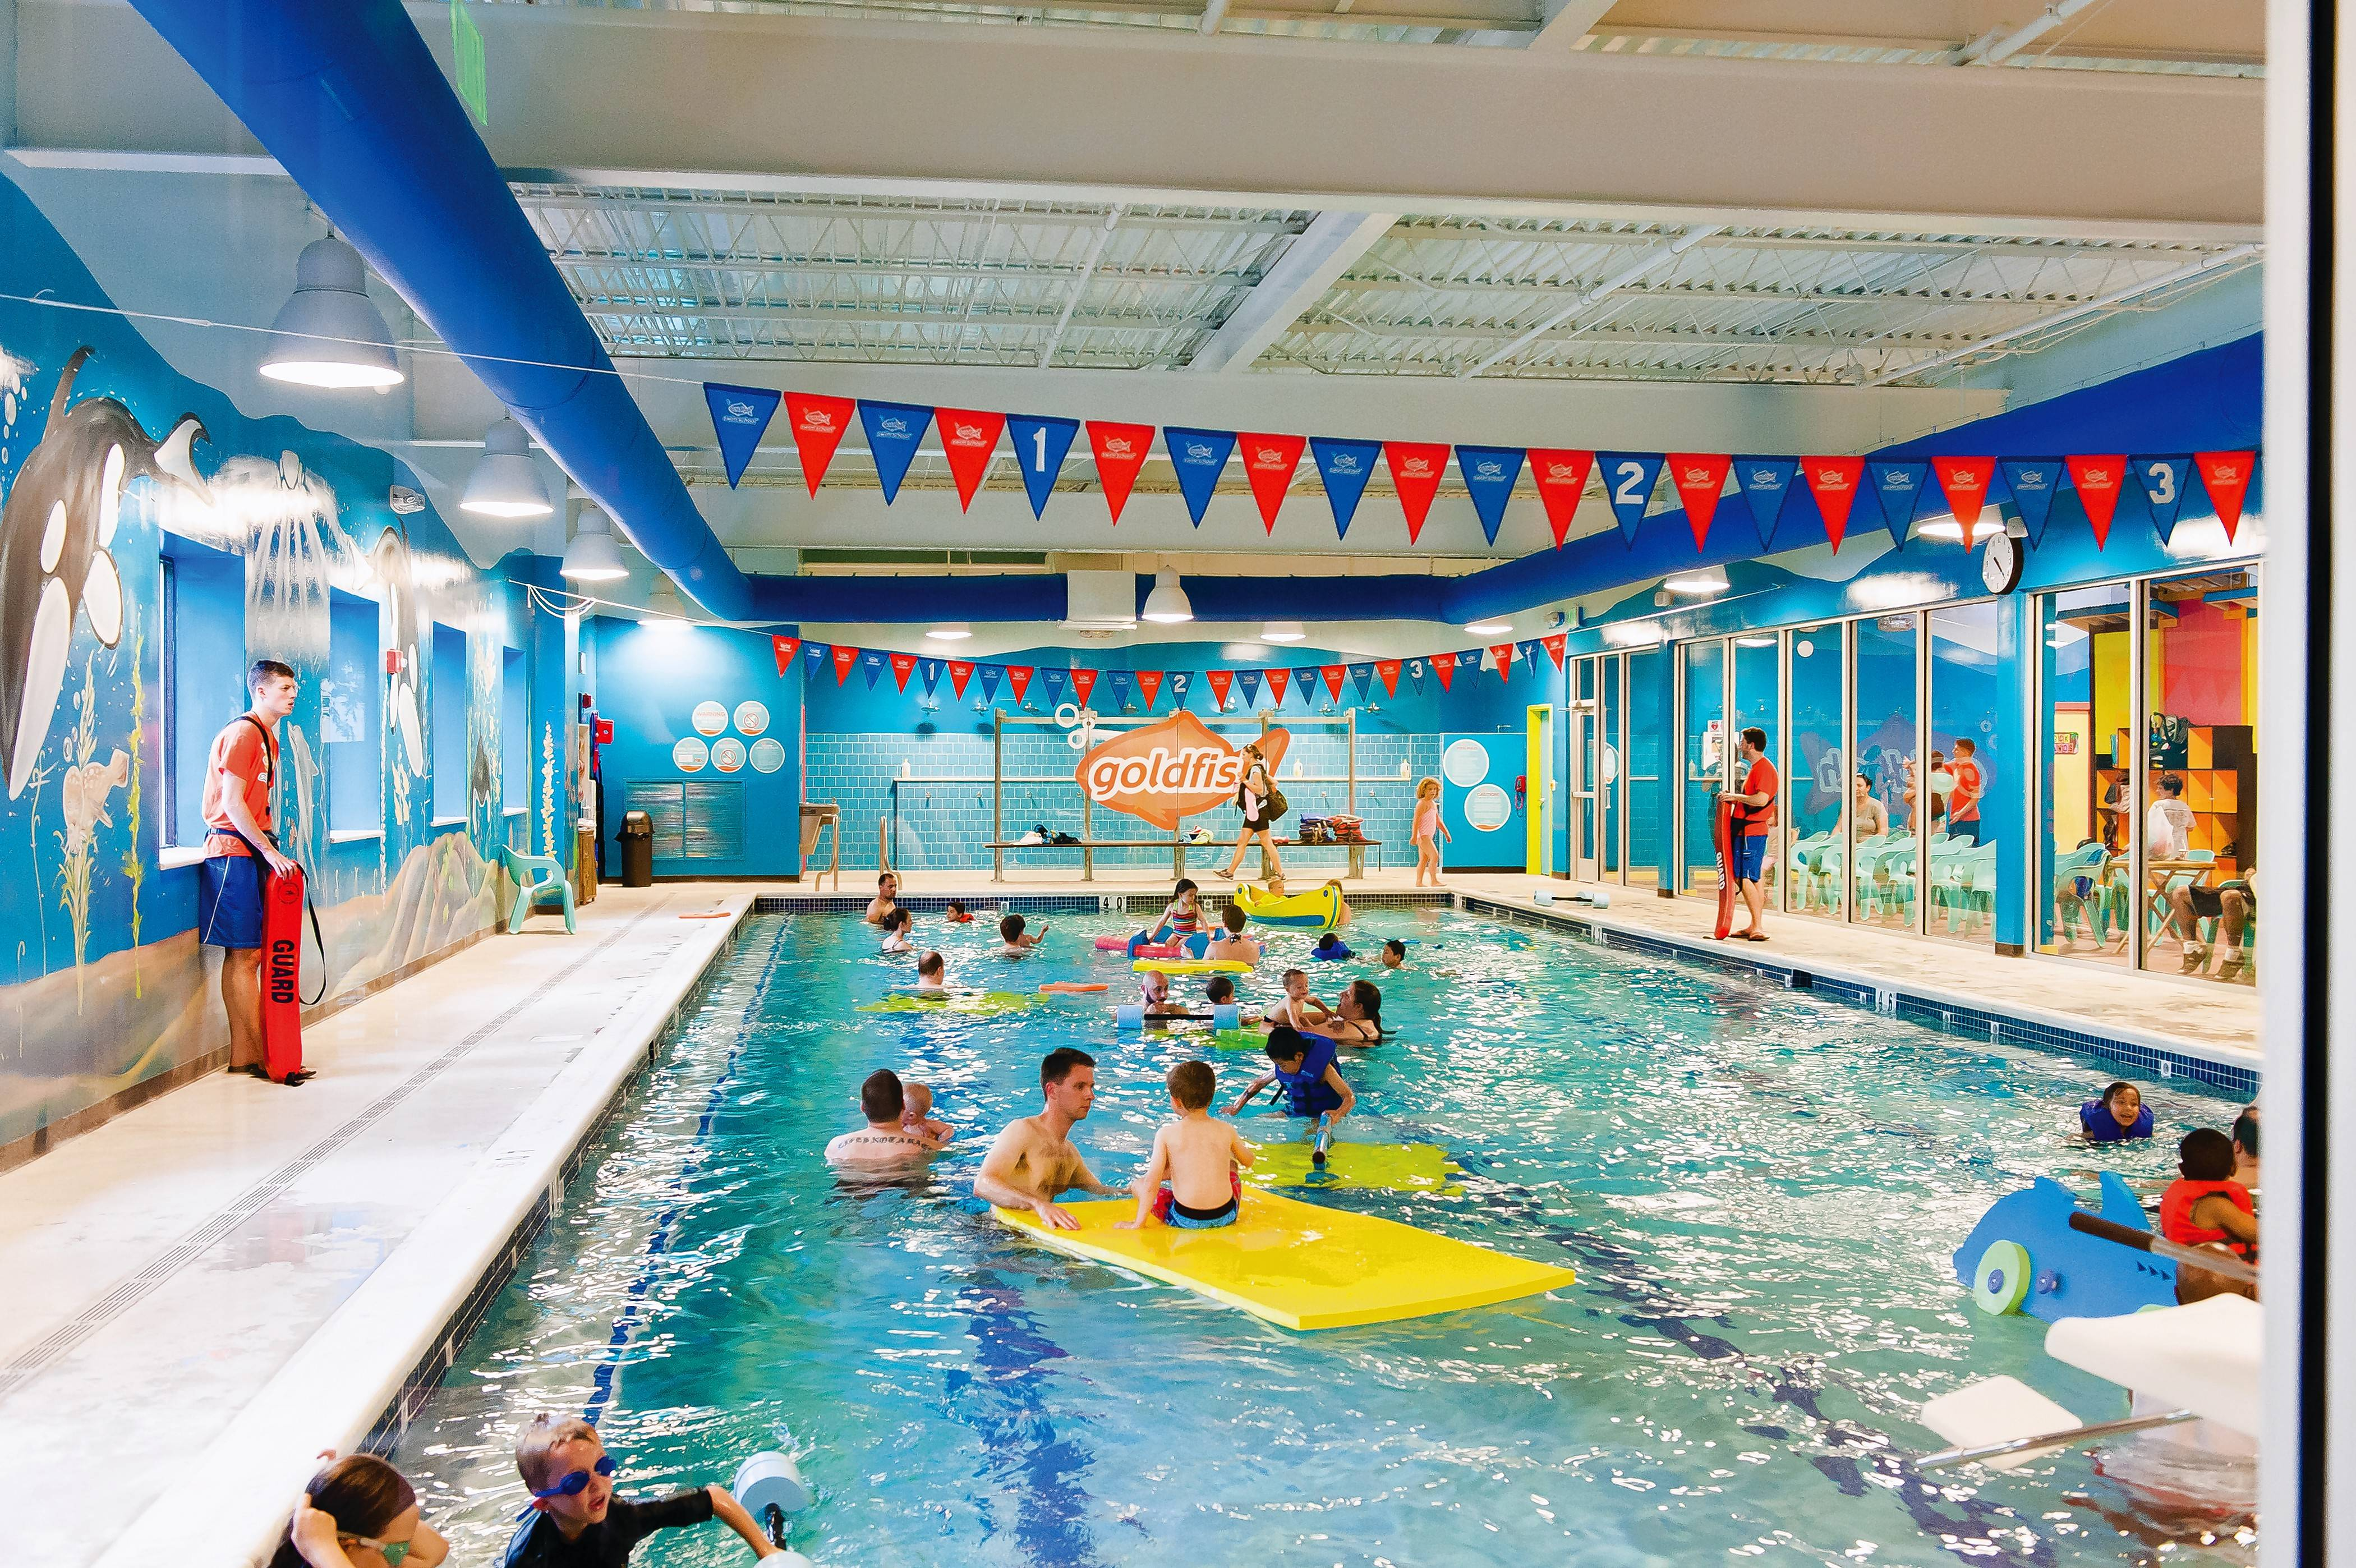 Goldfish Swim School, which has 11 schools in the Chicago area, is opening a new location this week in Arlington Heights.